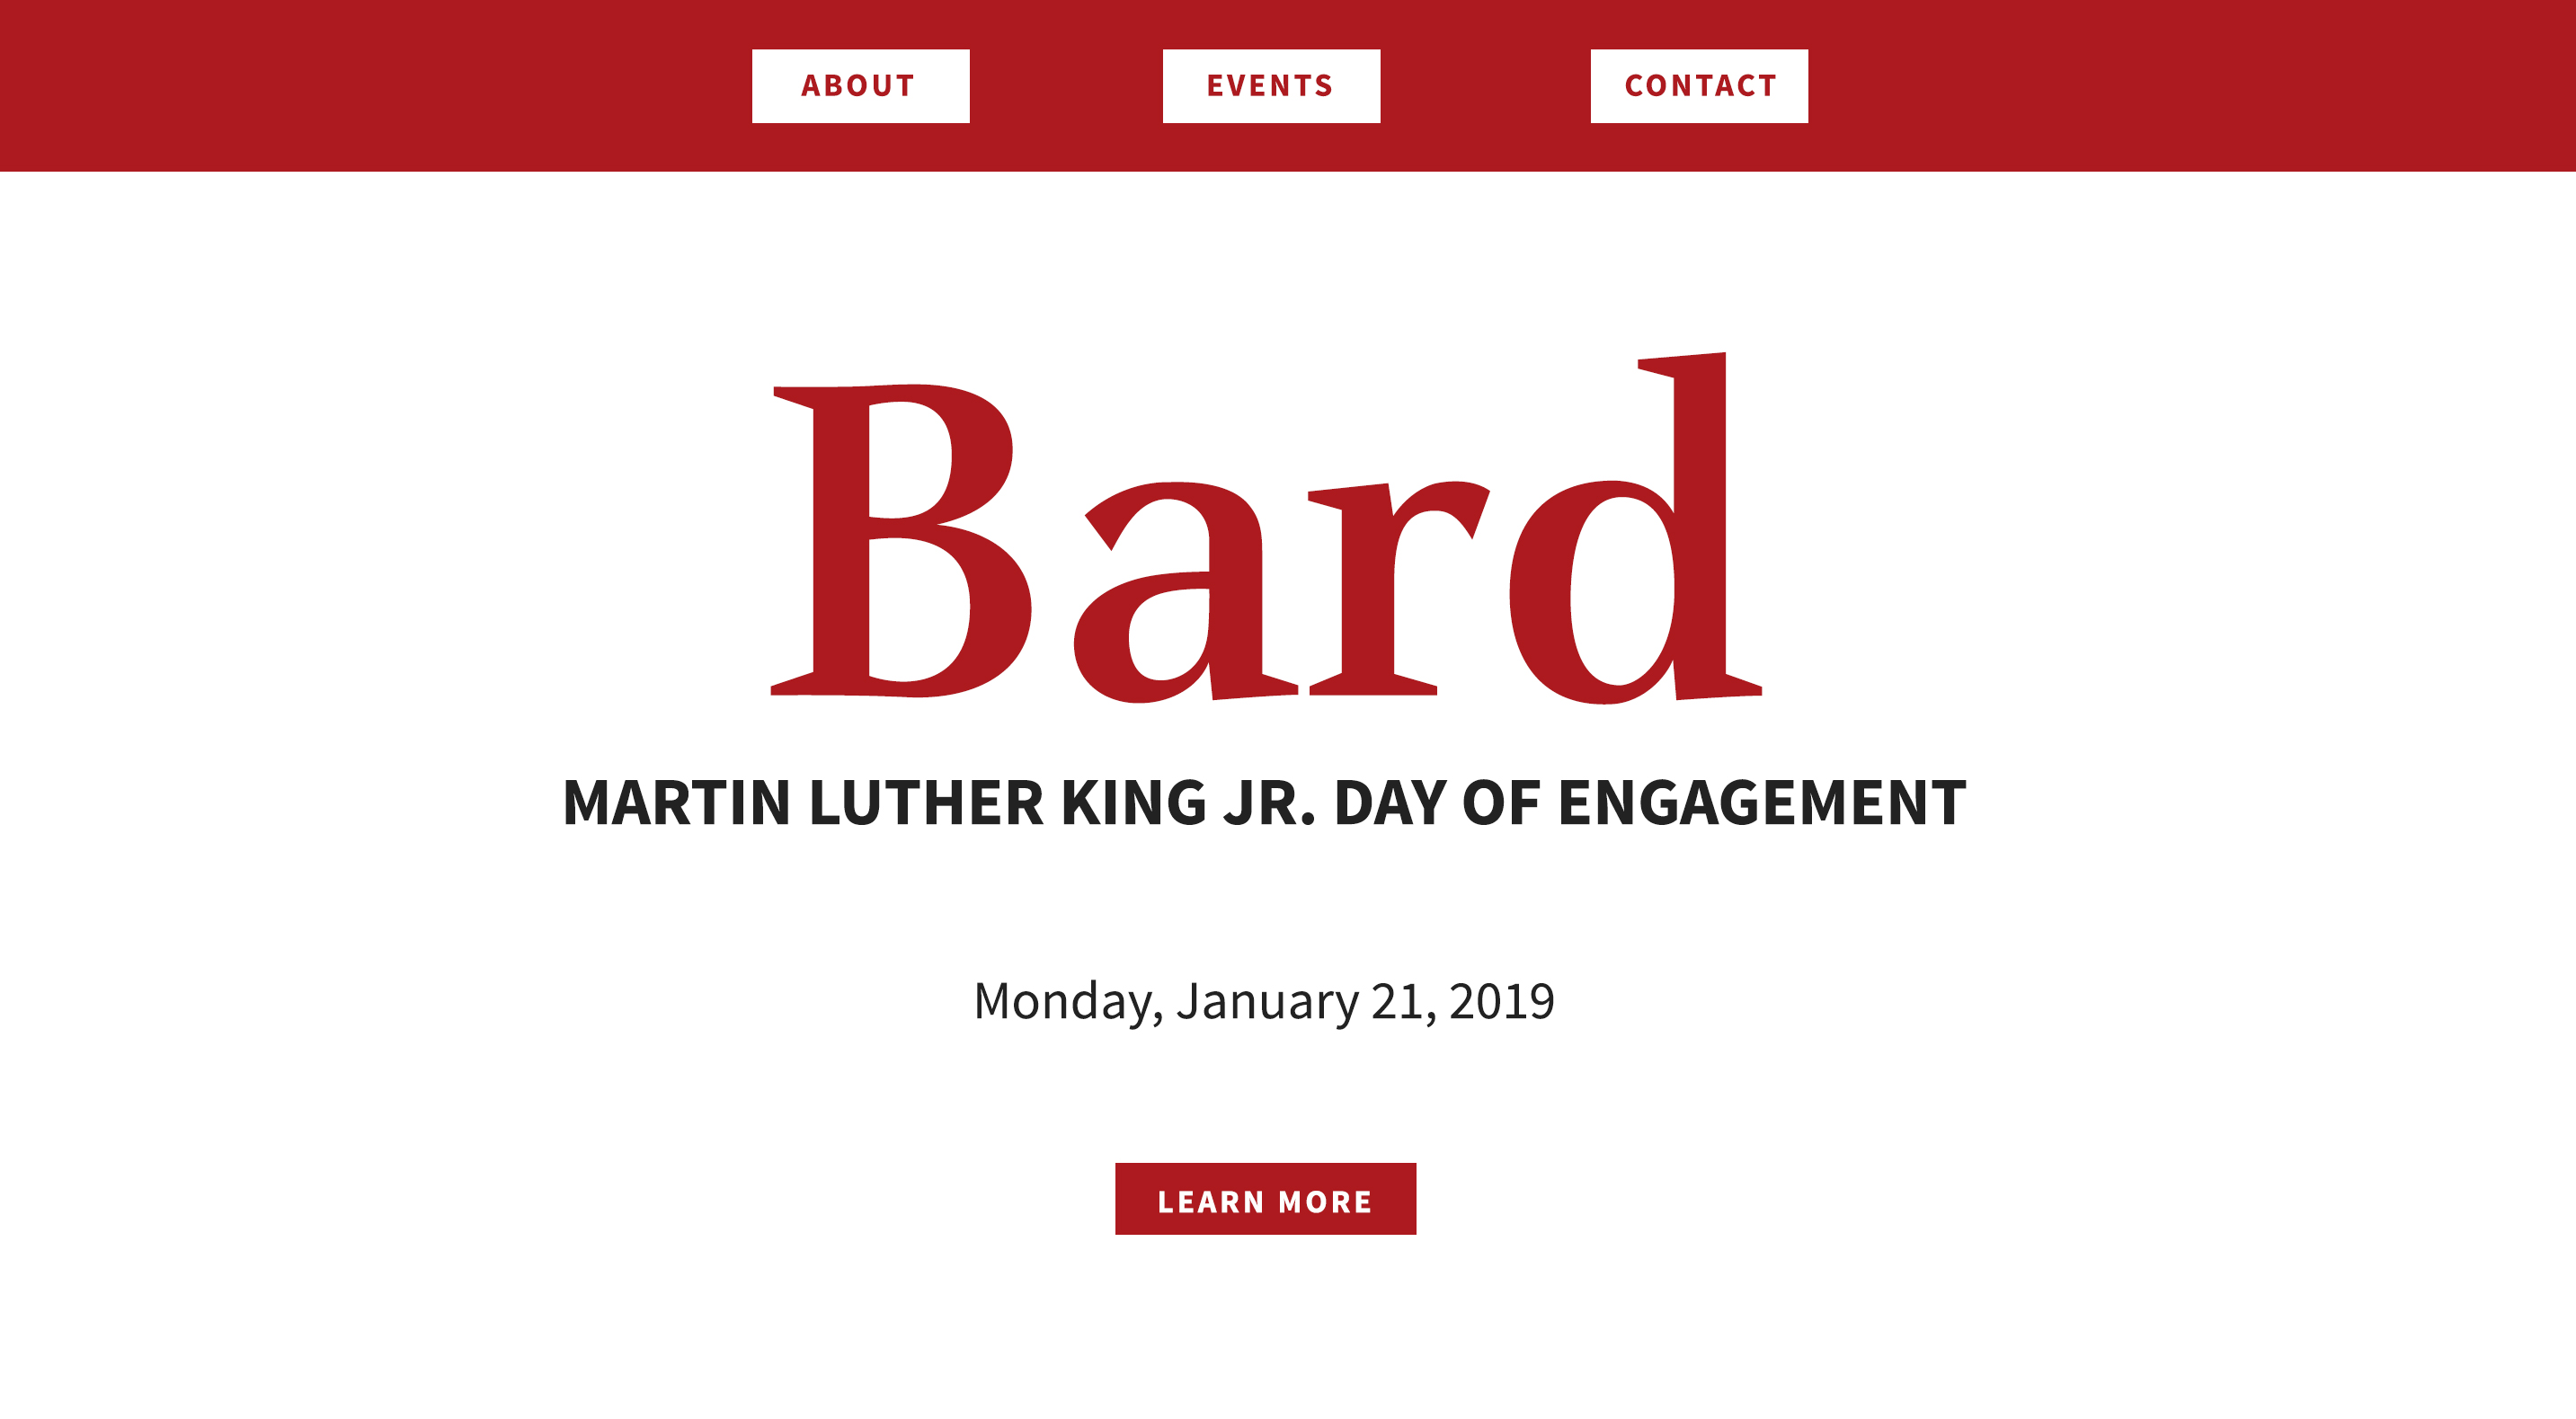 MLK Day of Engagement